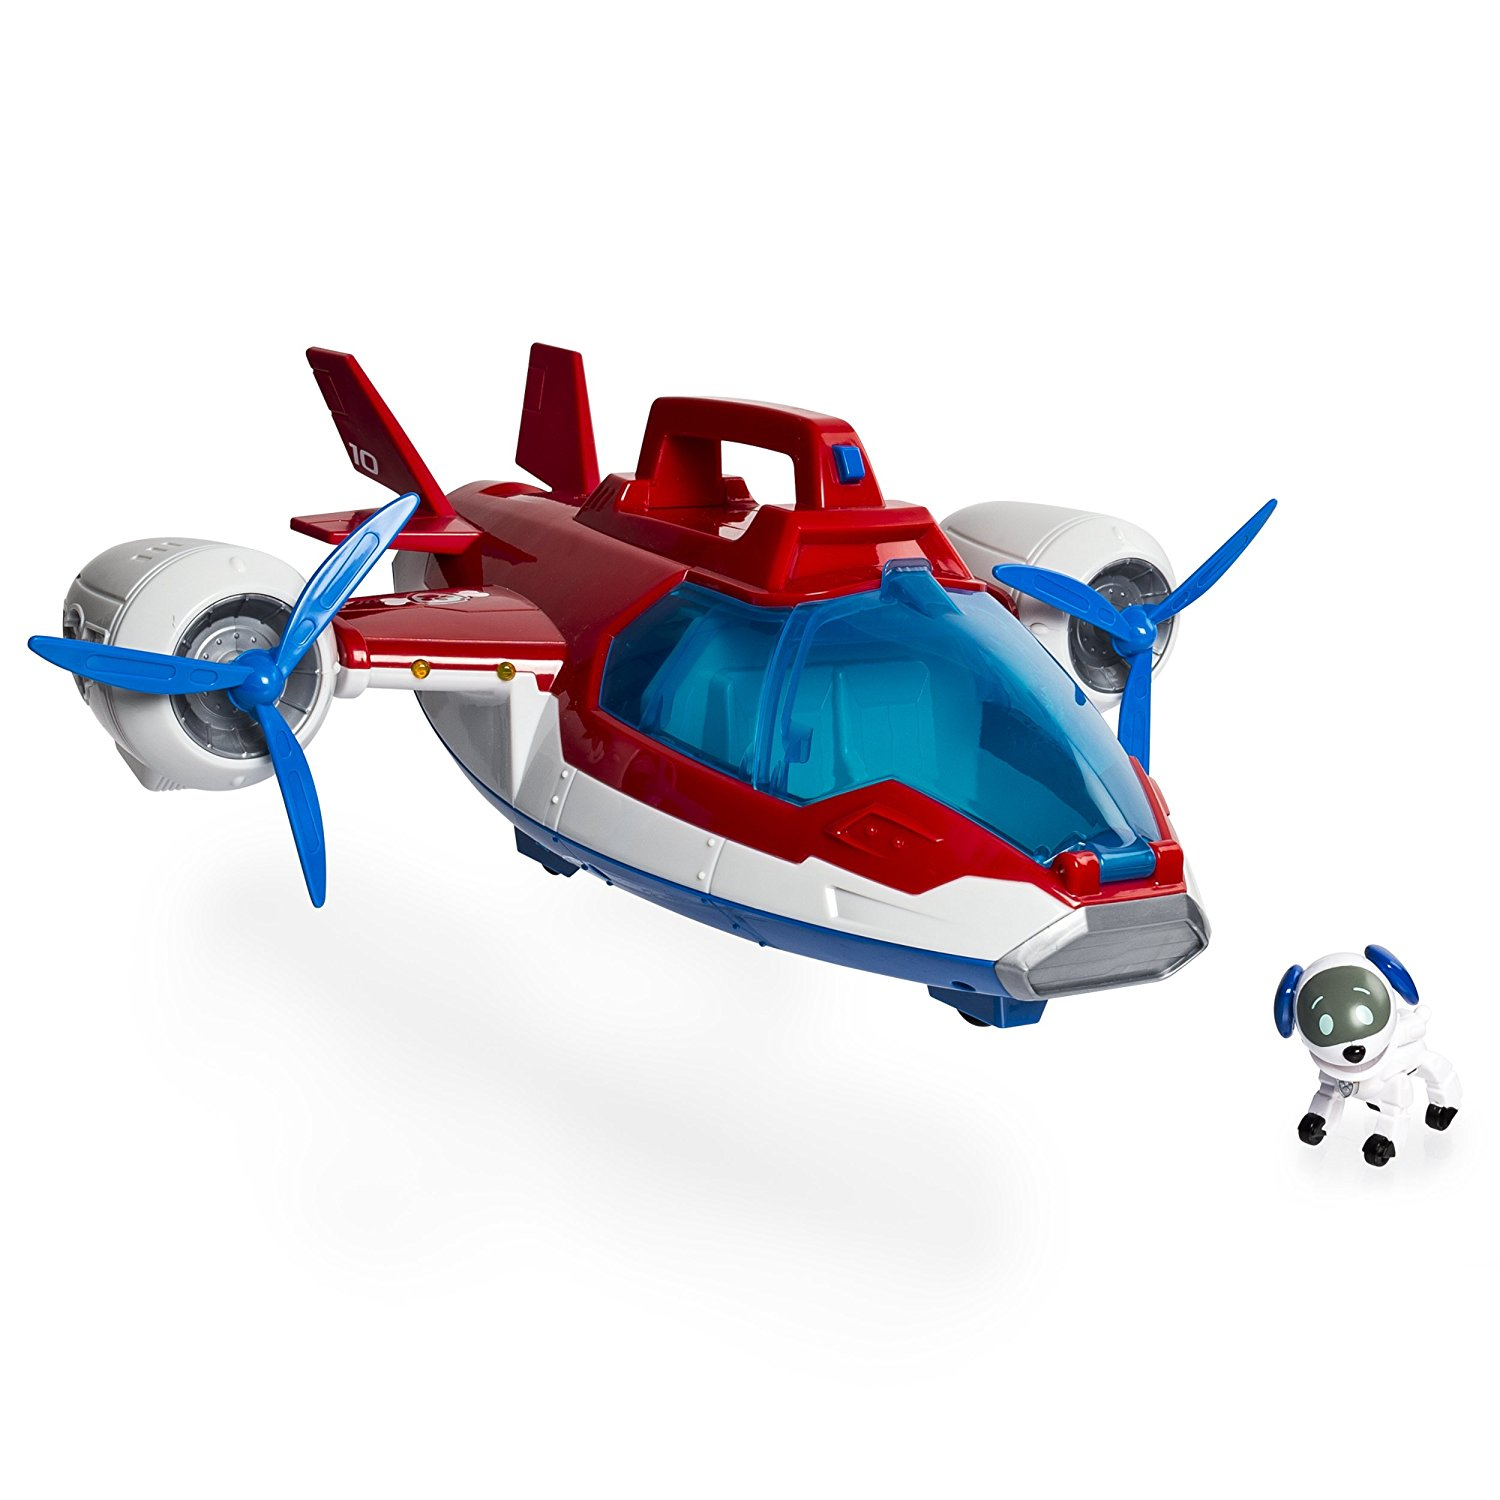 Paw Patrol, Lights and Sounds Air Patroller Plane by